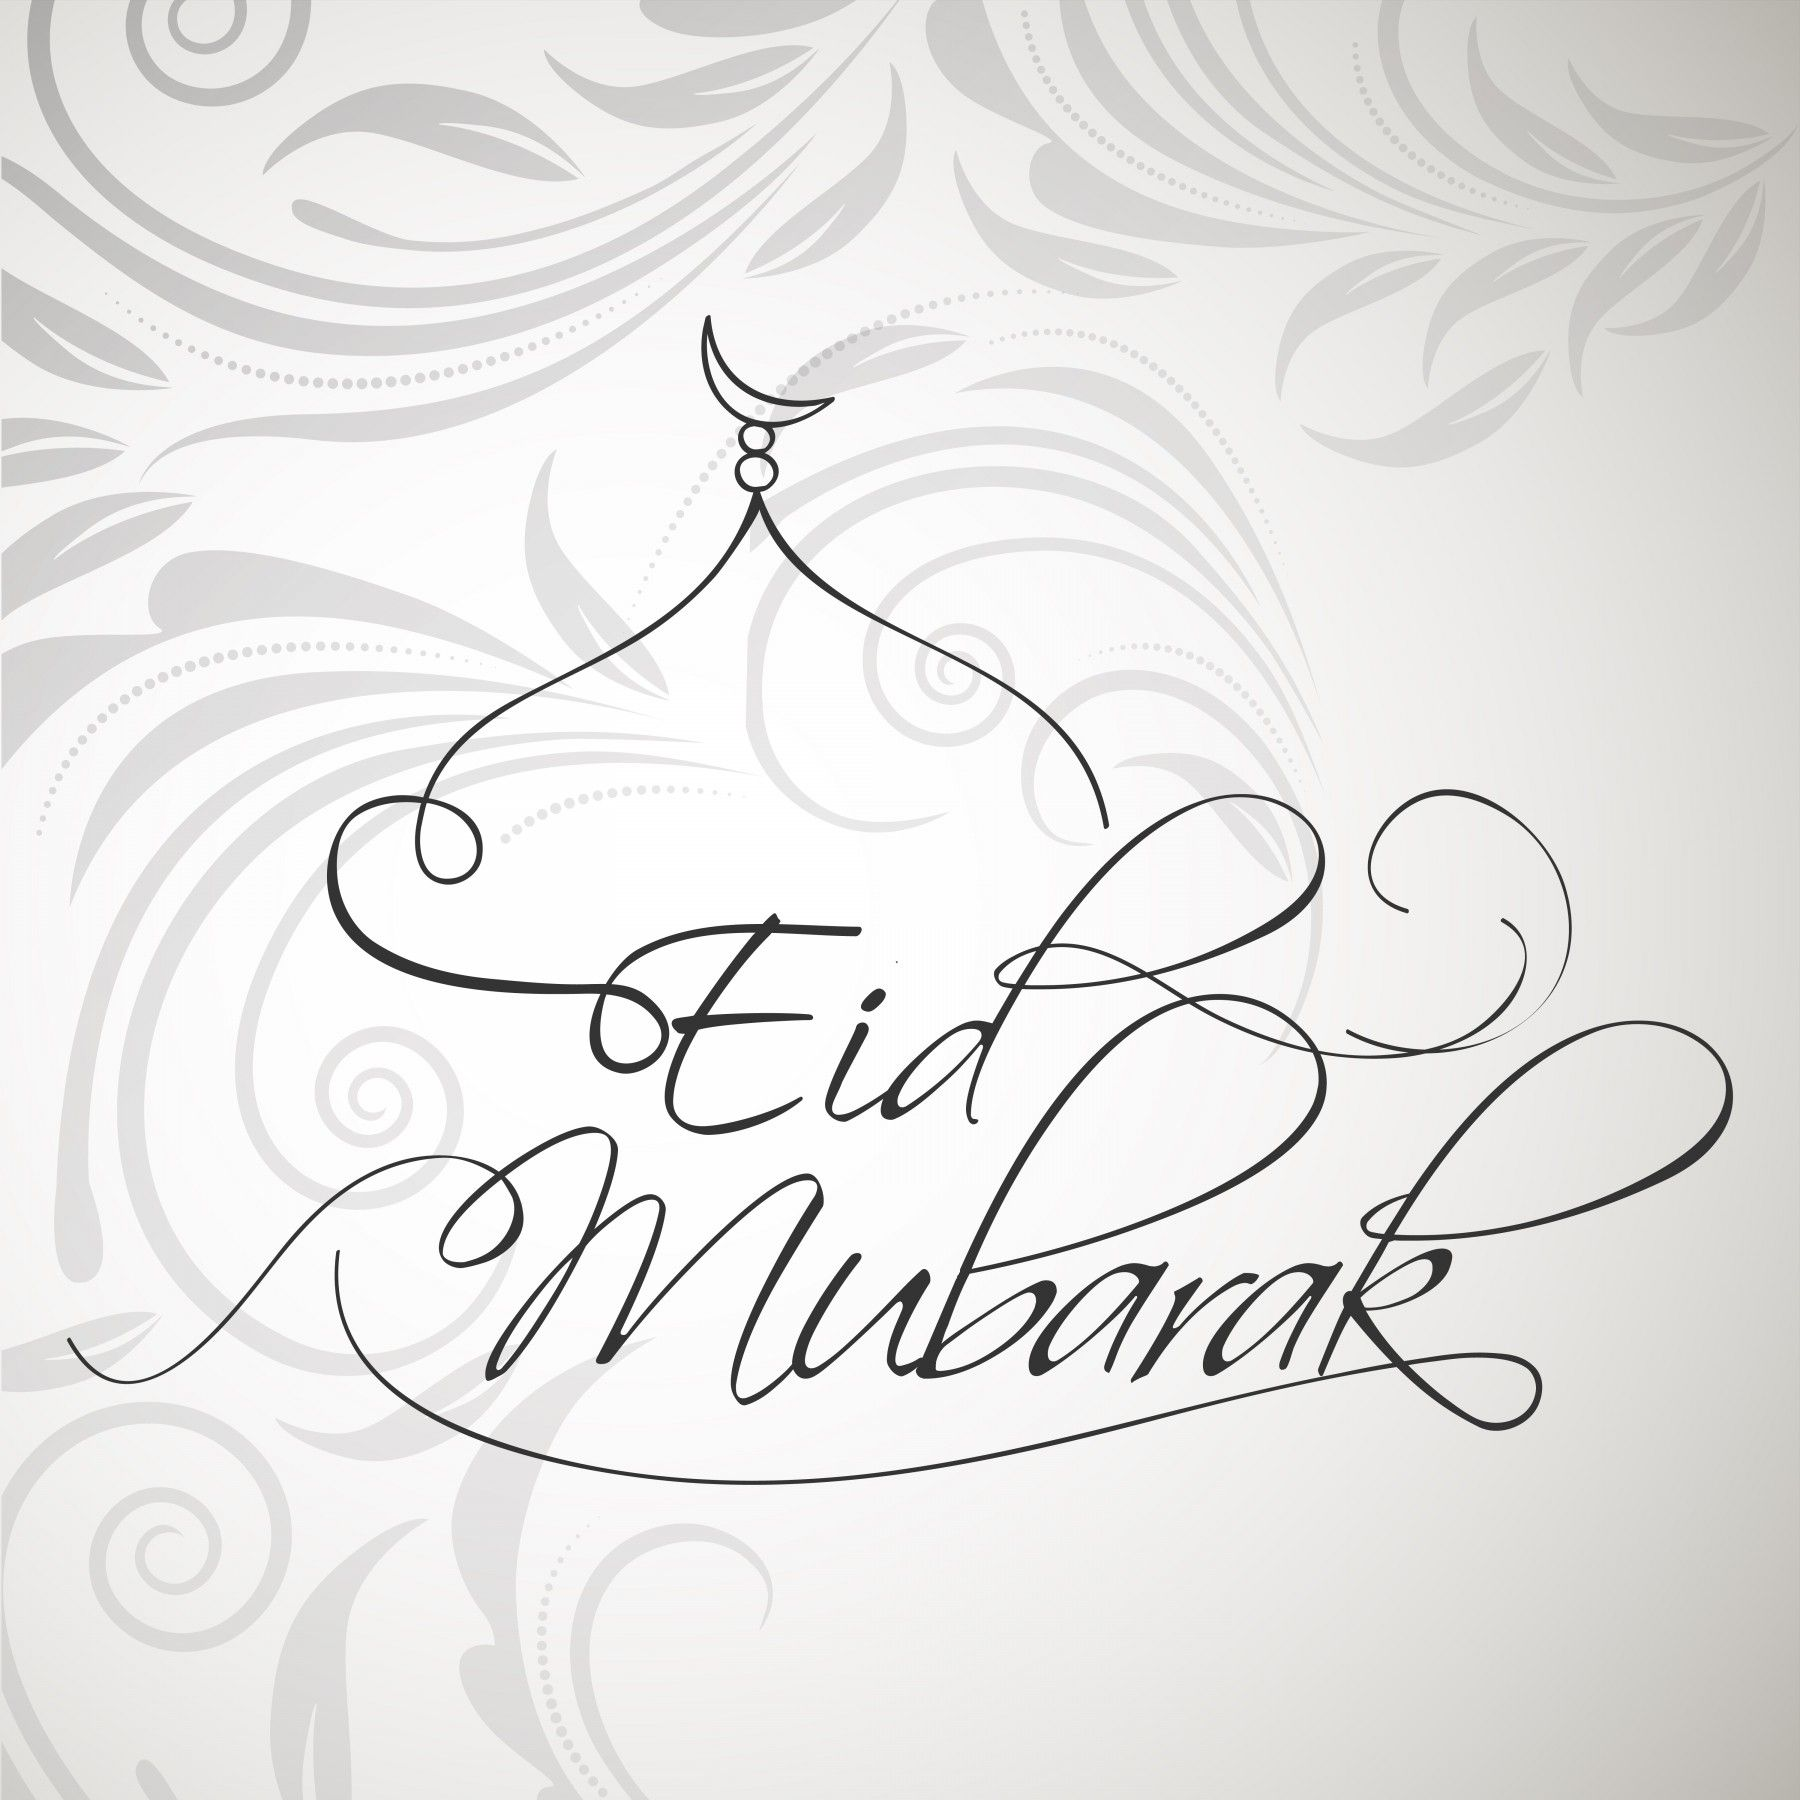 Eid mubarak wallpapers images cards 21 eid pinterest eid eid mubarak wallpapers images cards 21 kristyandbryce Image collections